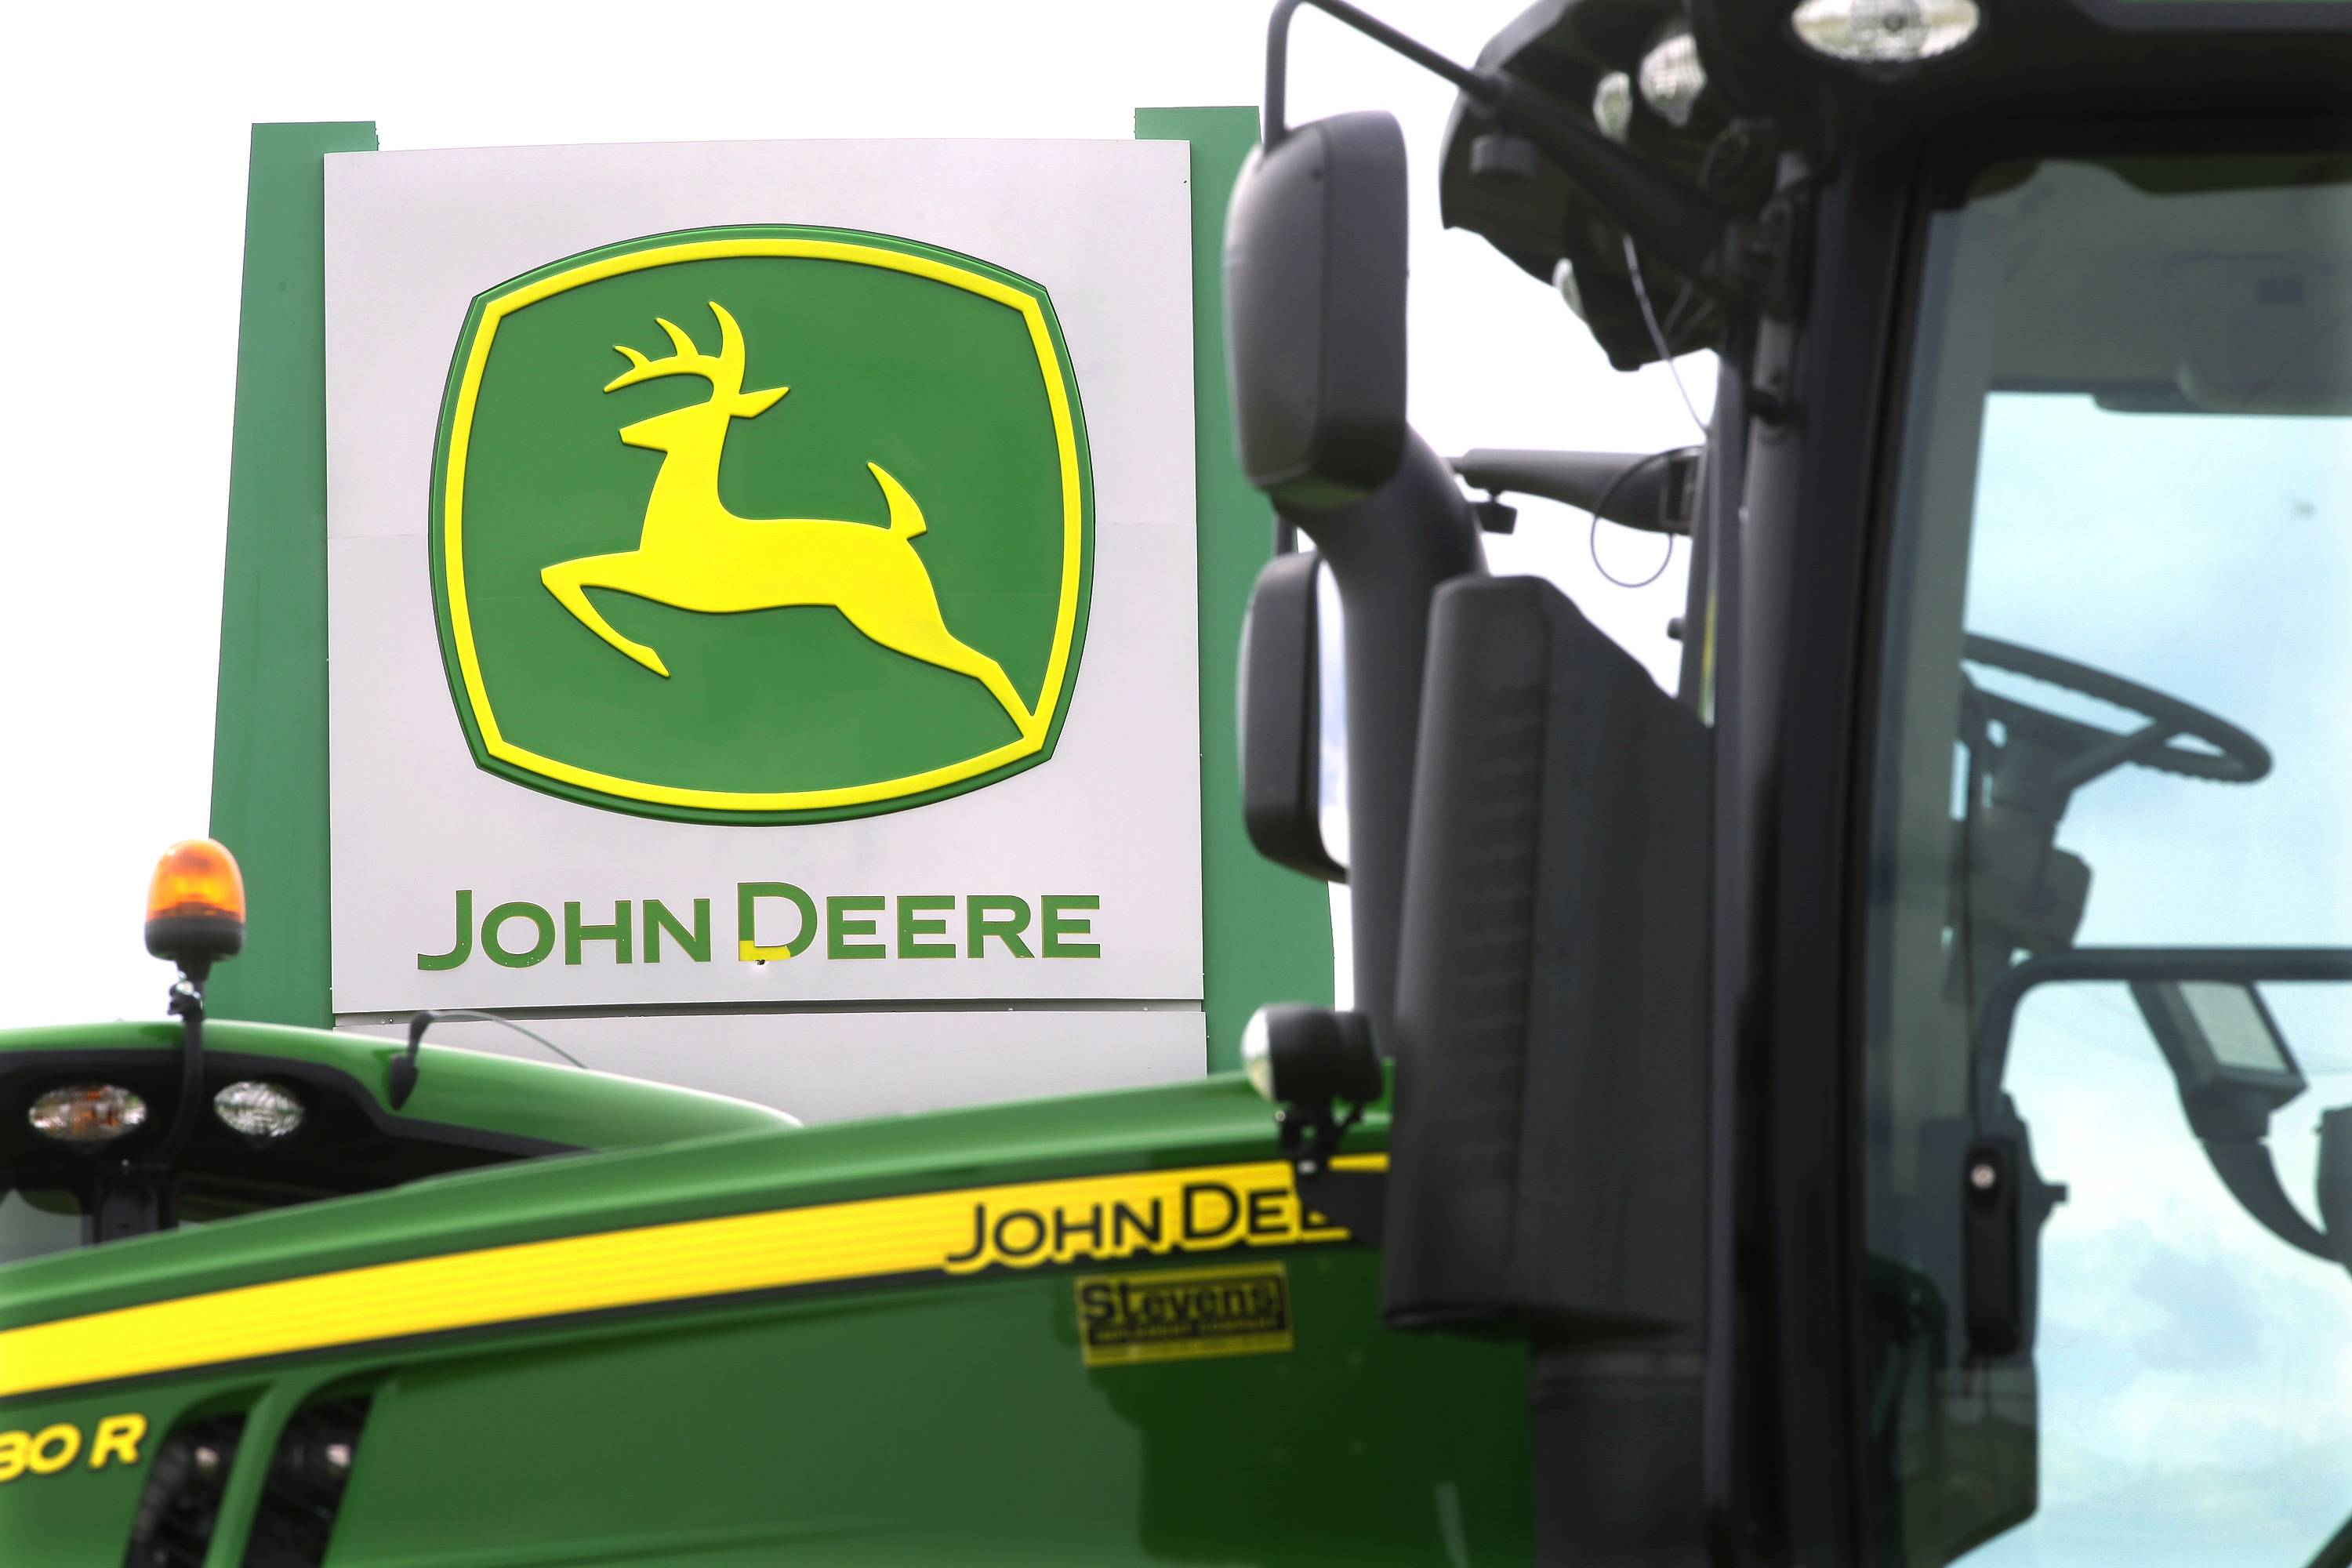 Deere 3Q profit falls as equipment sales decline